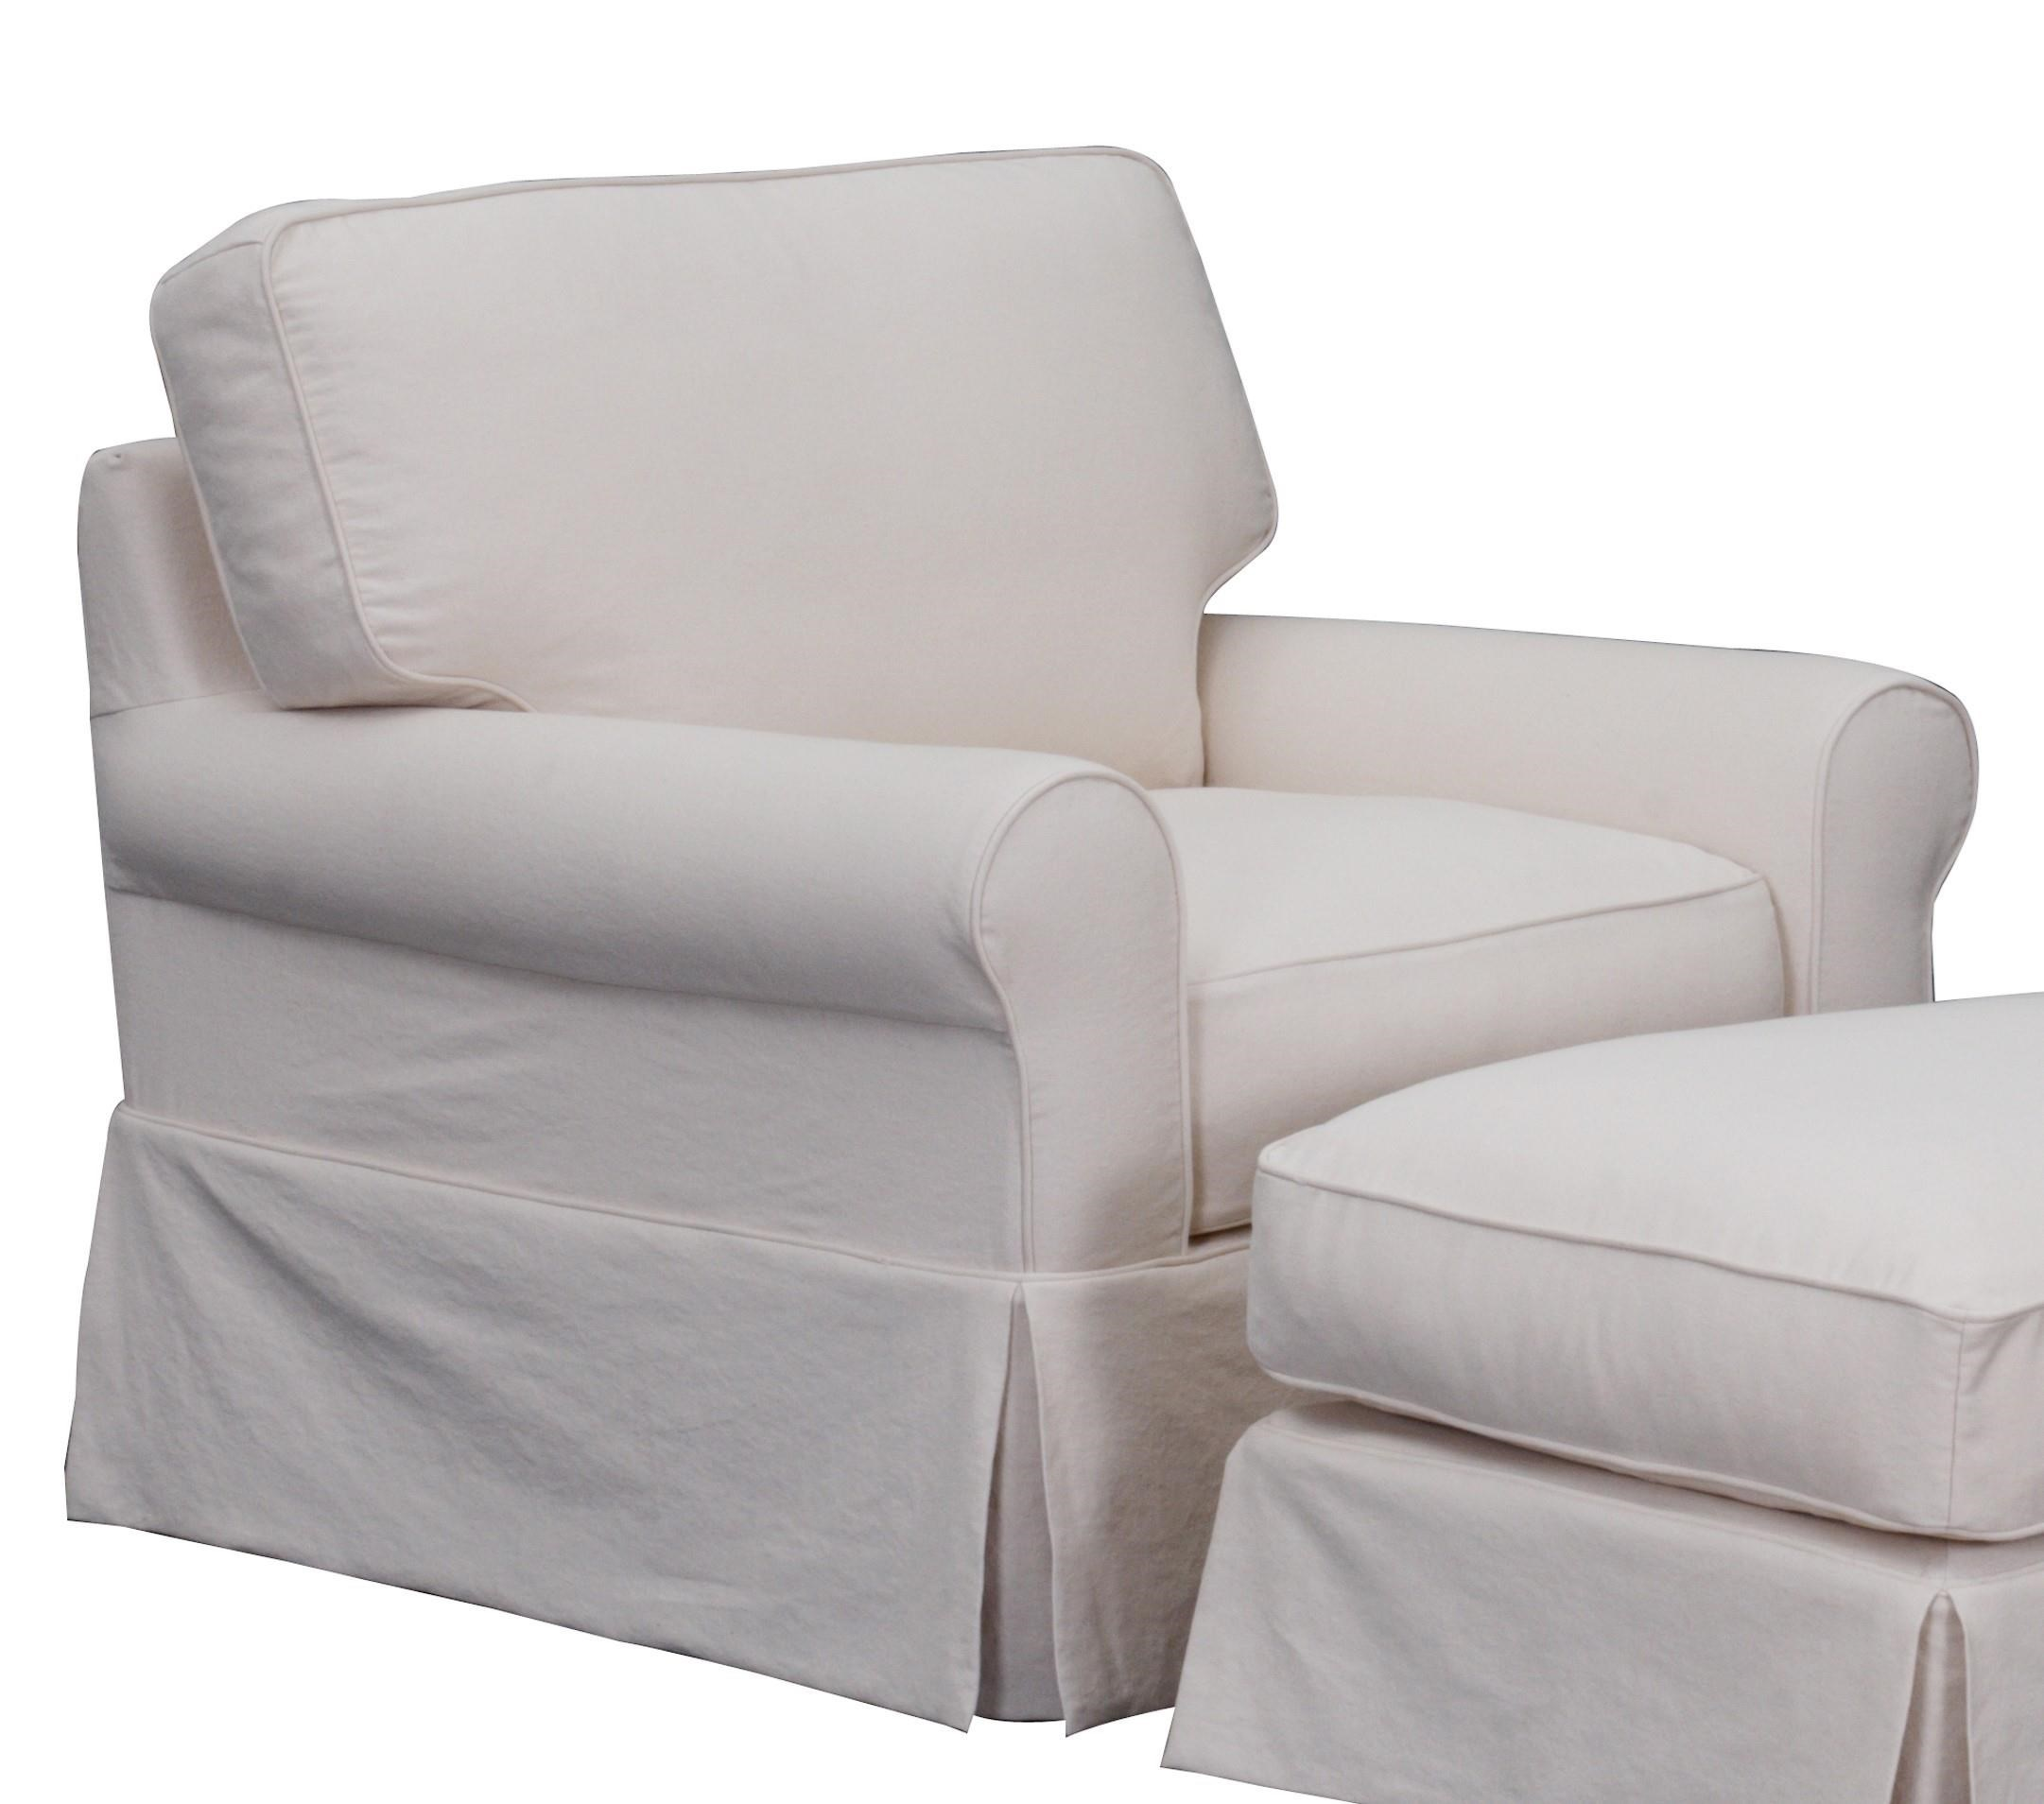 Accent Chairs By Synergy Home Furnishings. Chair